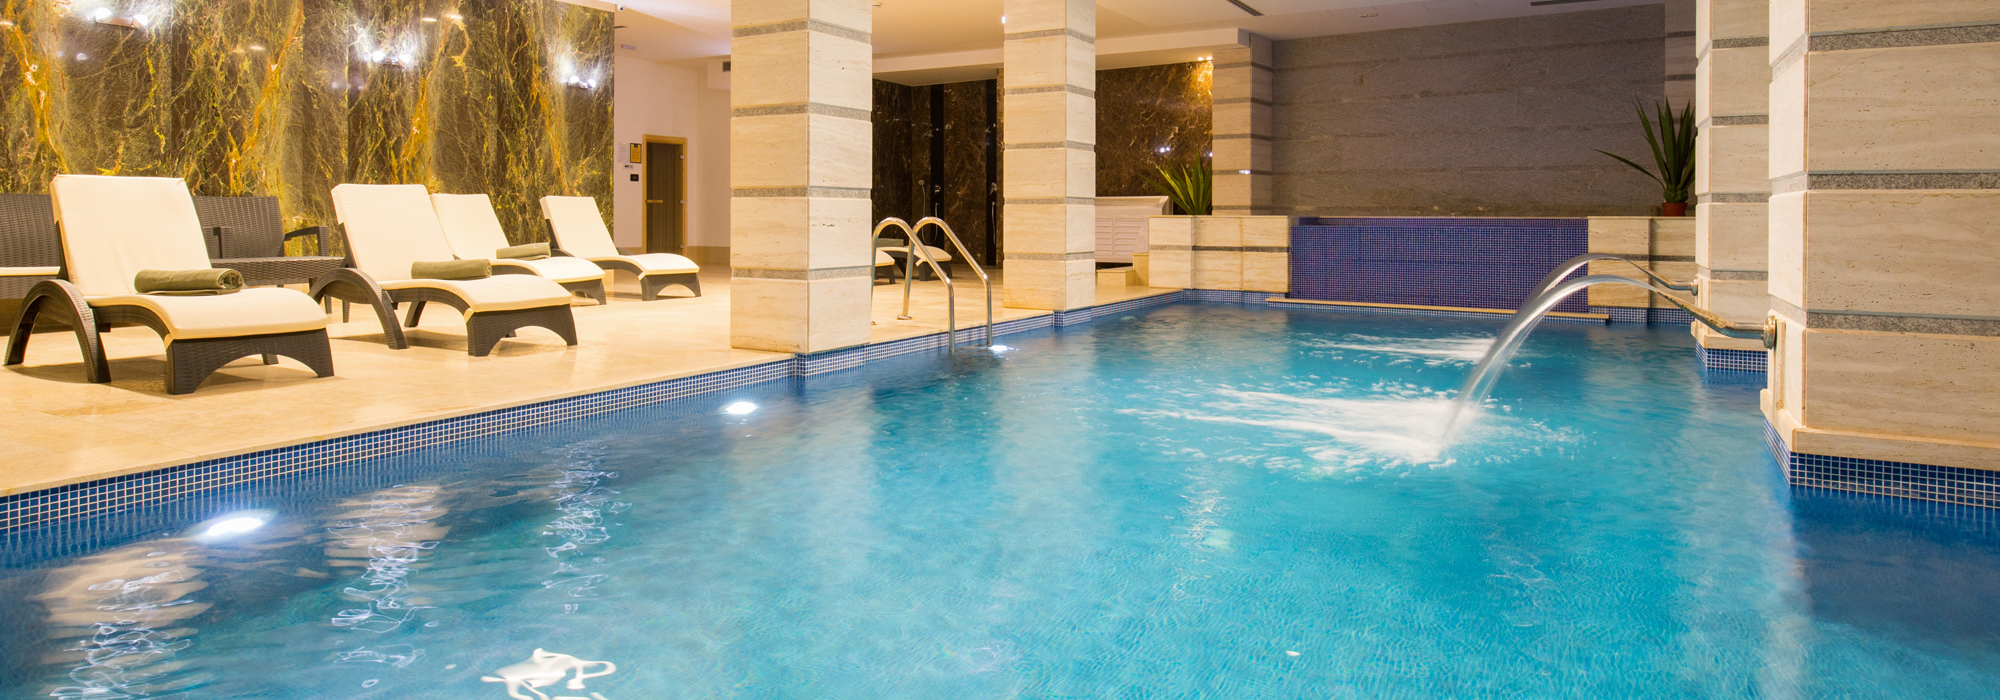 Myrtle Beach Commercial Pool Services